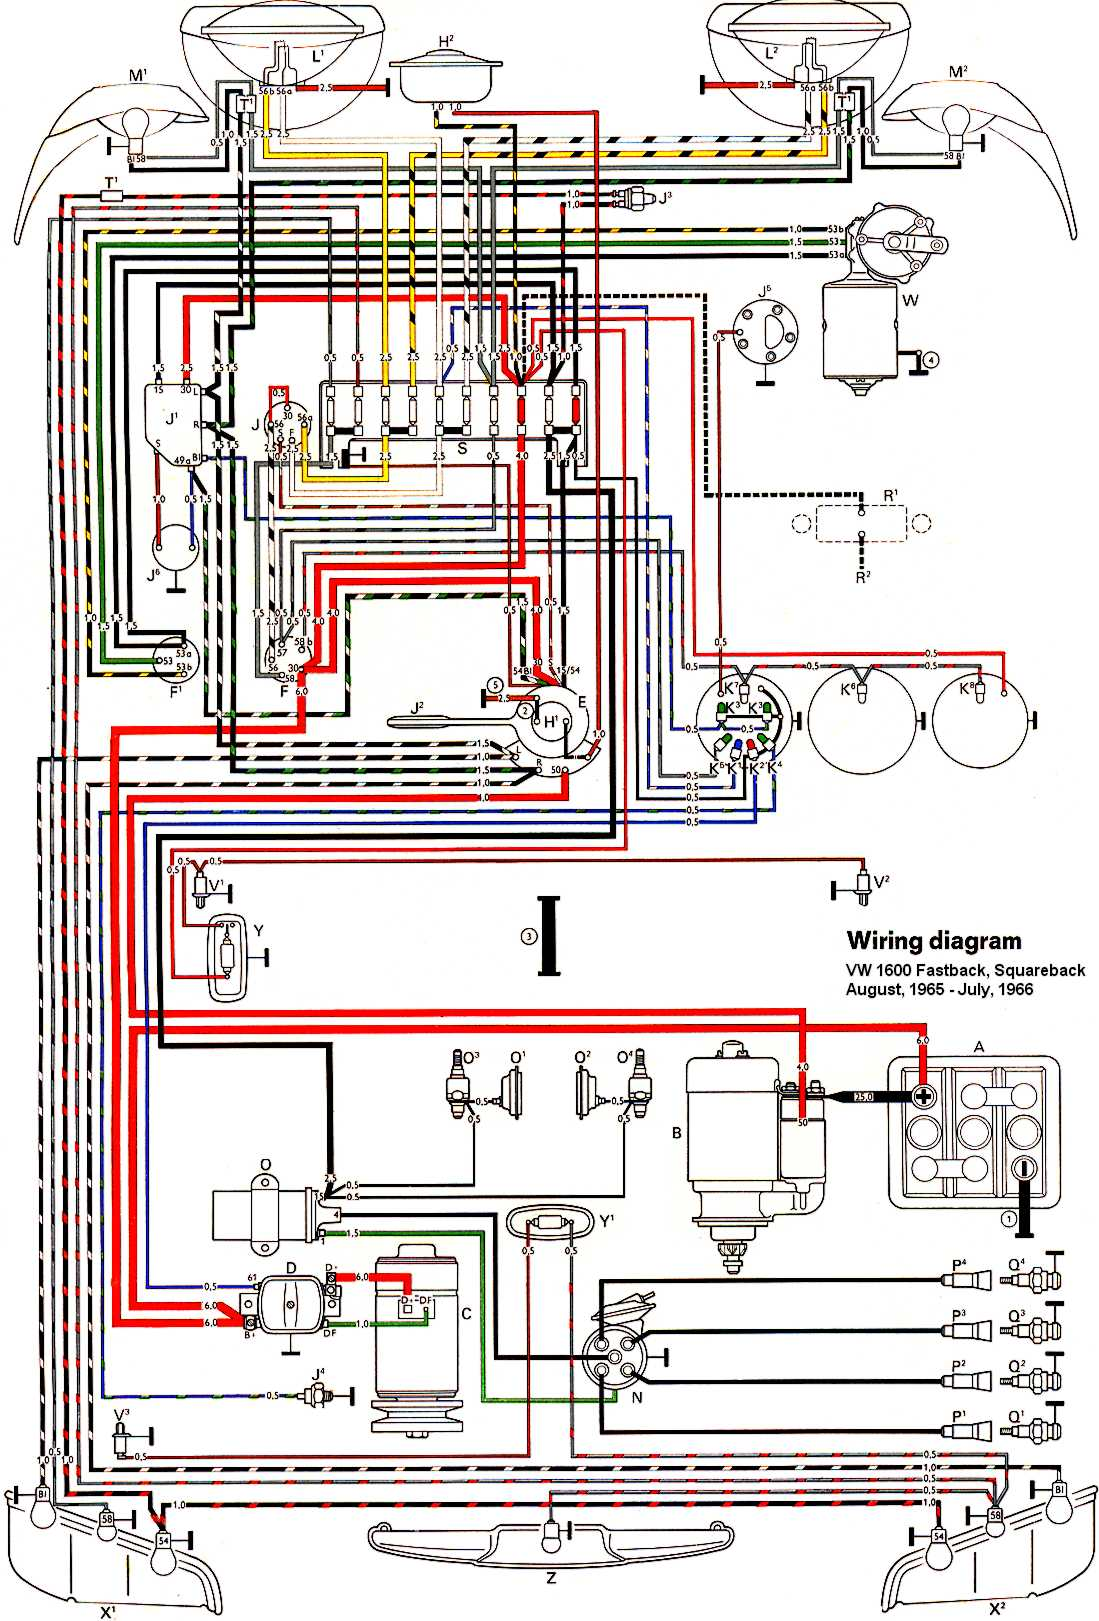 type3_1600_66 2003 vw beetle wiring diagram 2003 nissan maxima wiring diagram 73 super beetle wiring diagram at readyjetset.co